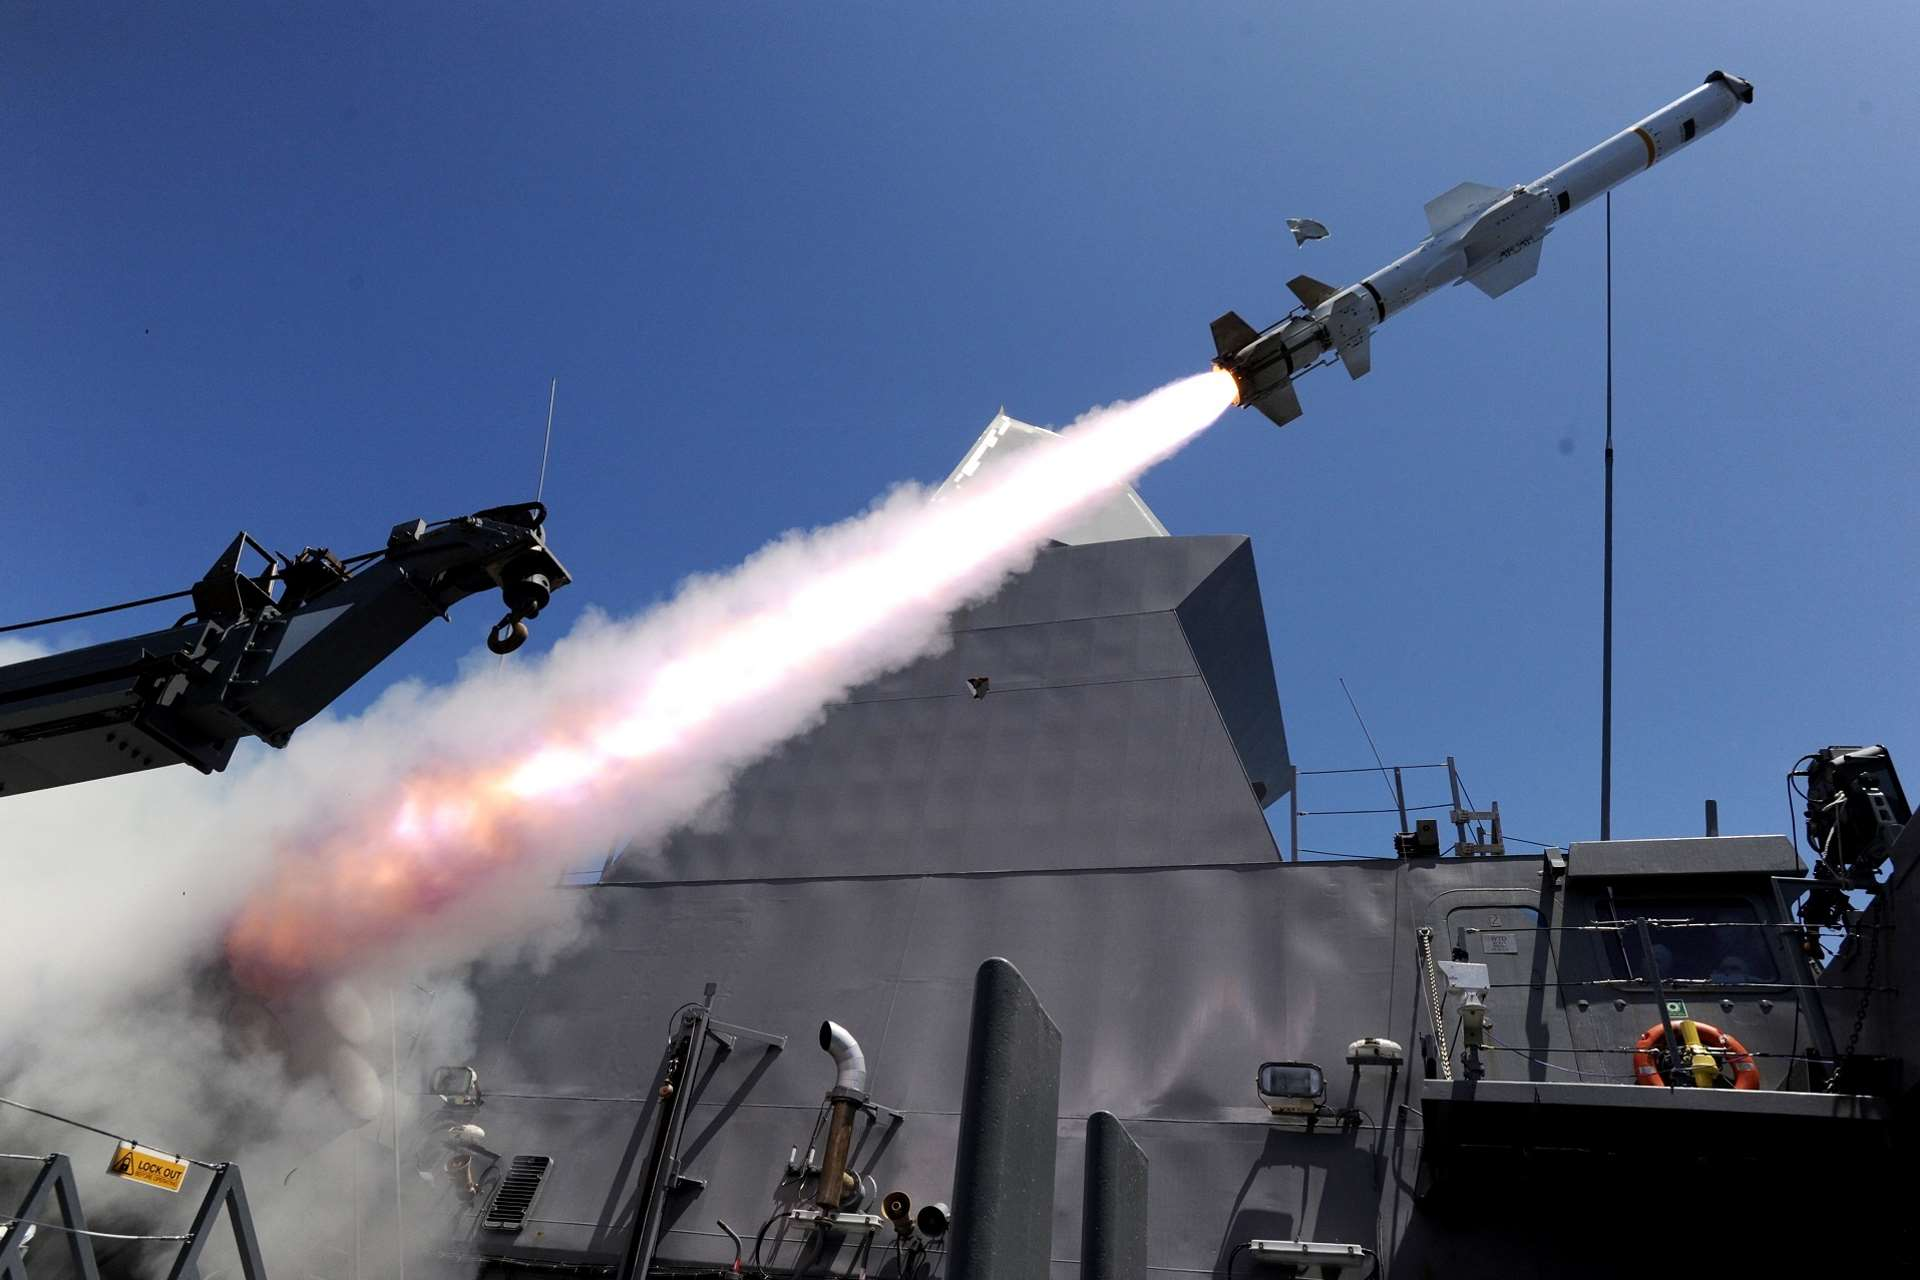 One of the two Harpoon missiles launched from the Republic of Singapore (RSN)'s Formidable-class frigate RSS Tenacious, in a Simultaneous Time-on-Target Harpoon surface-to-surface live missile firing conducted by the RSN.